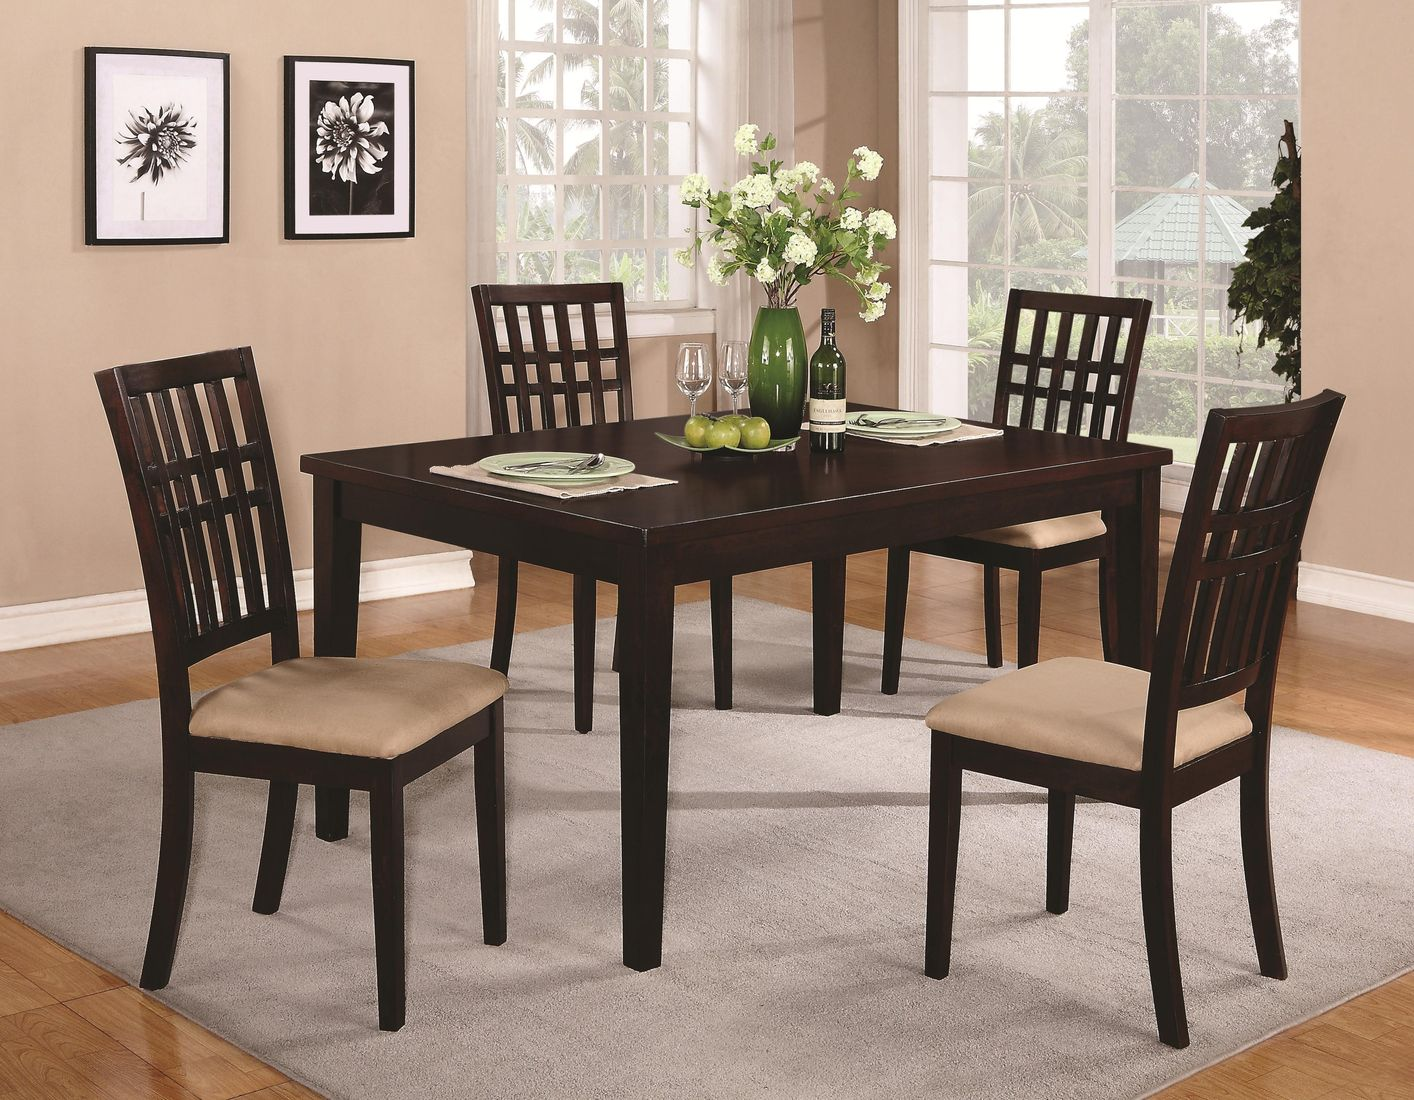 Brandt Dark Cherry Wood Dining Table - Steal-A-Sofa Furniture ...